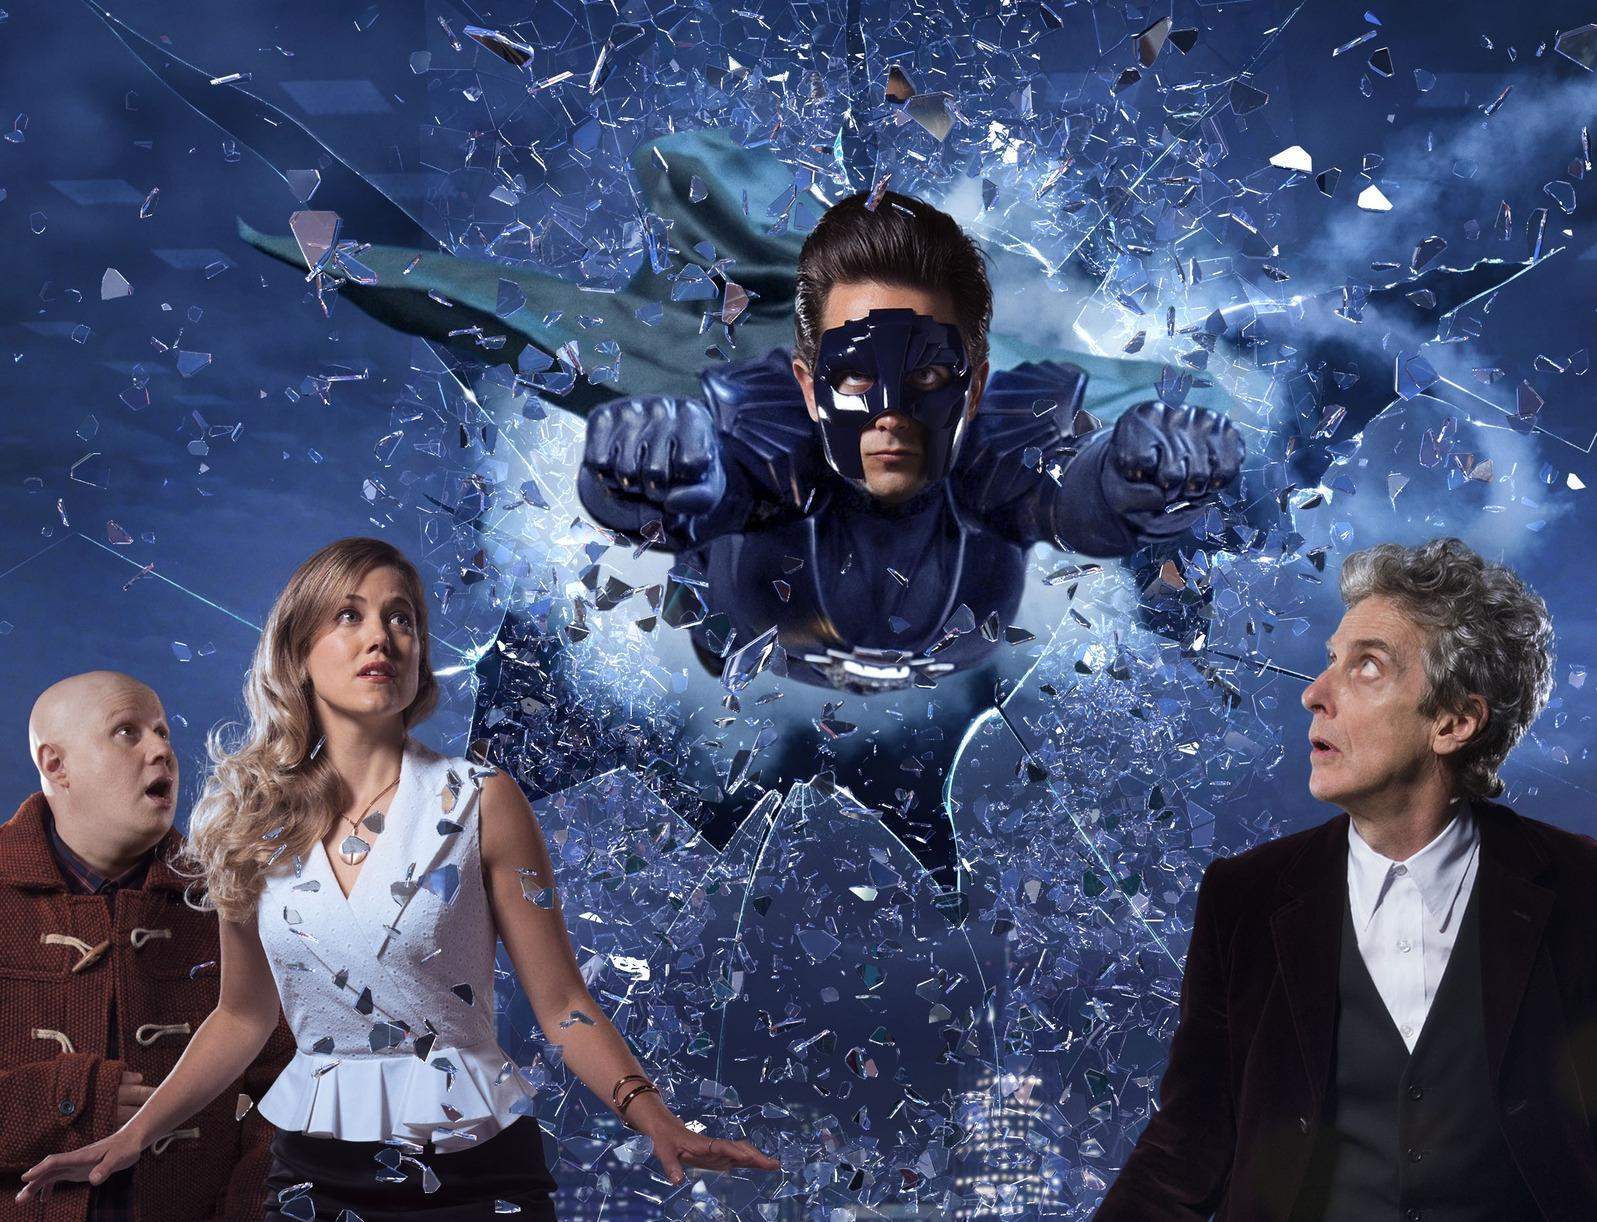 The action packed trailer for the Doctor Who Christmas special is here